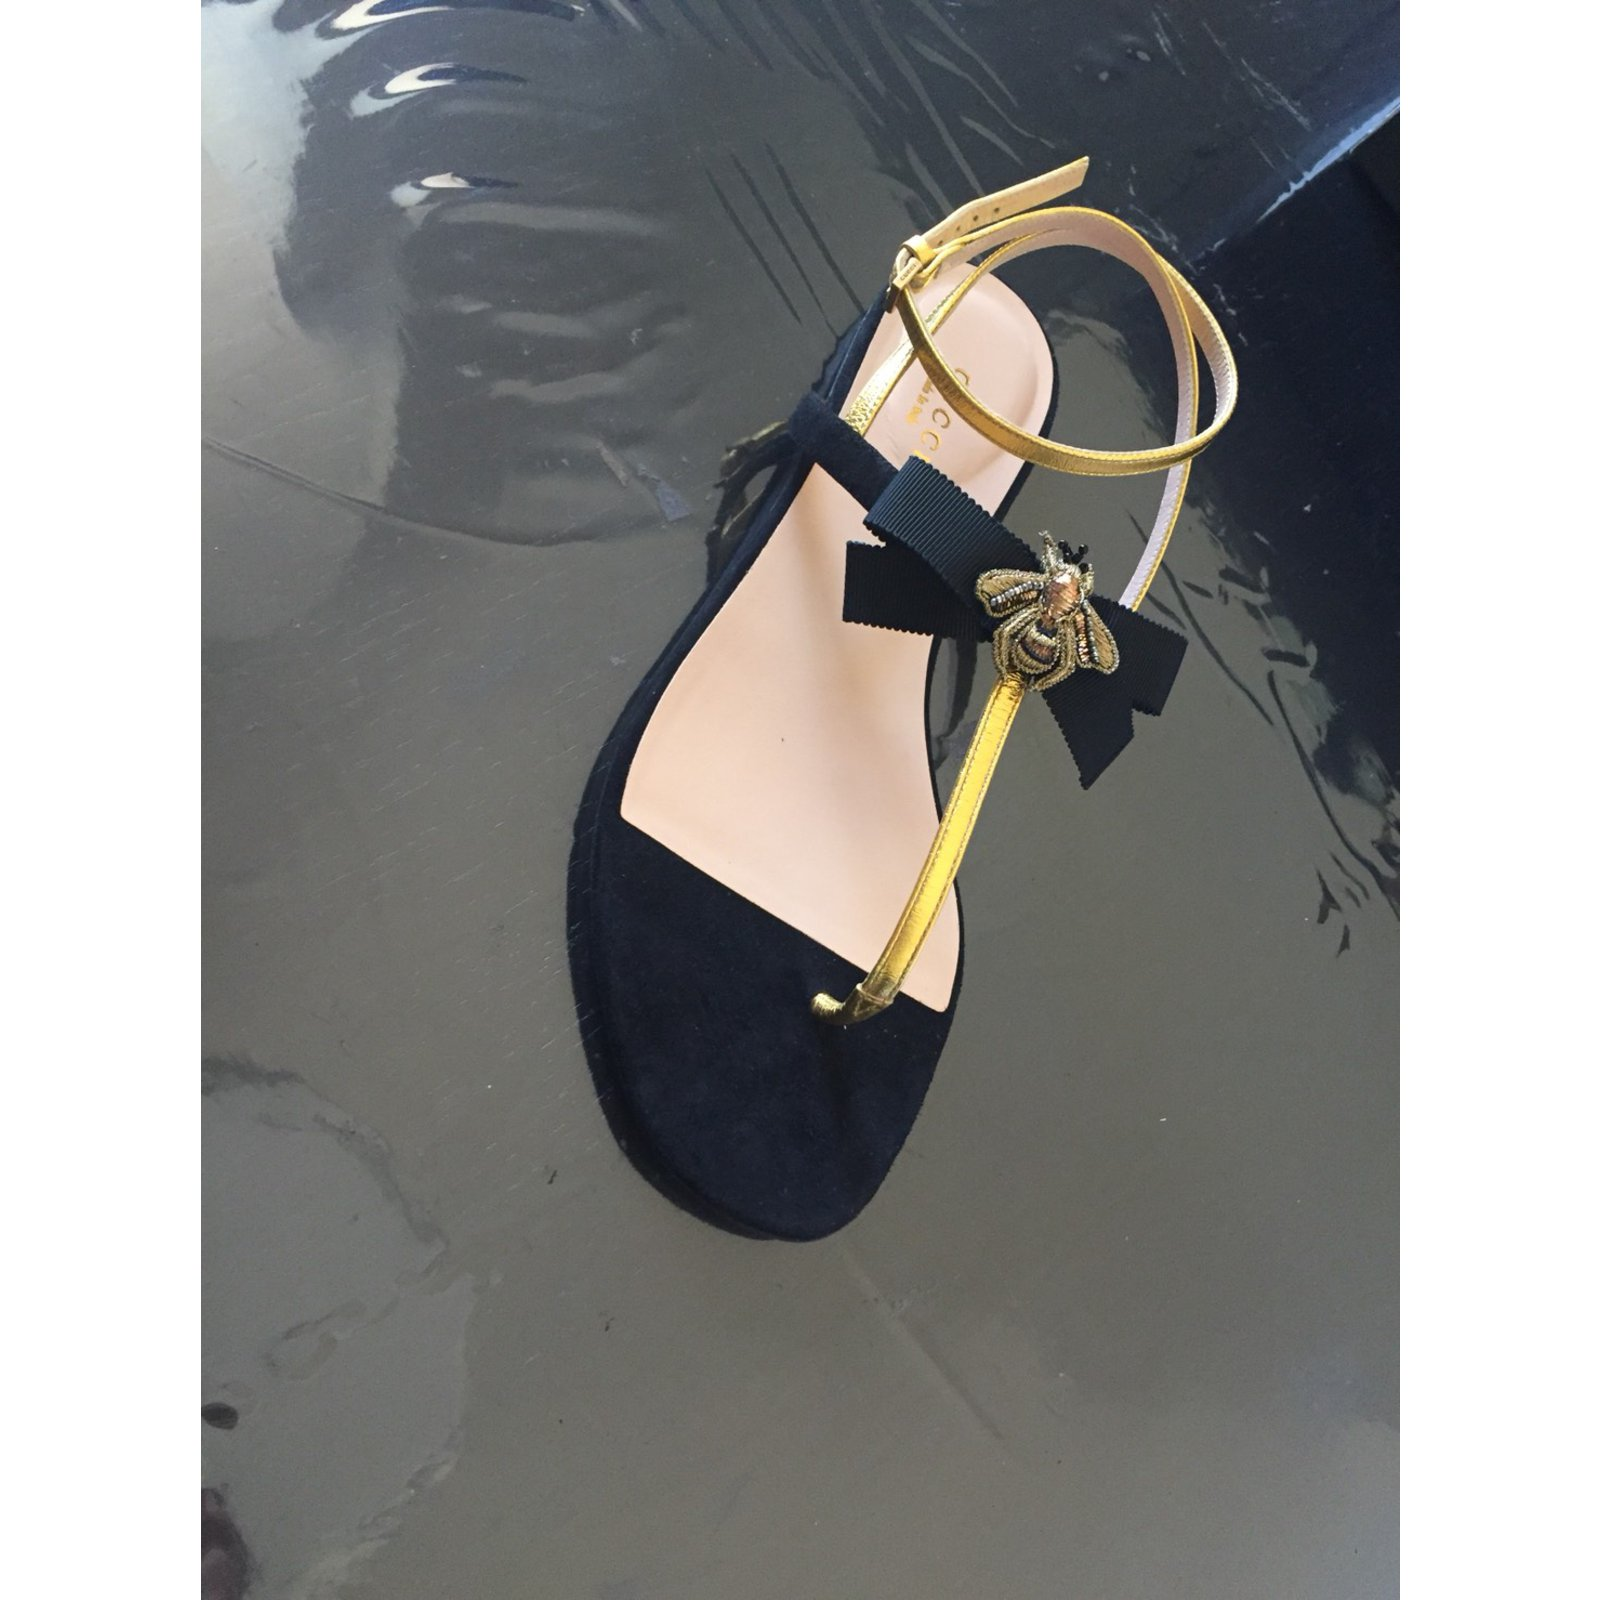 ff7a9feeb0a Gucci Gucci flat sandal bee model 2018 Sandals Other Black